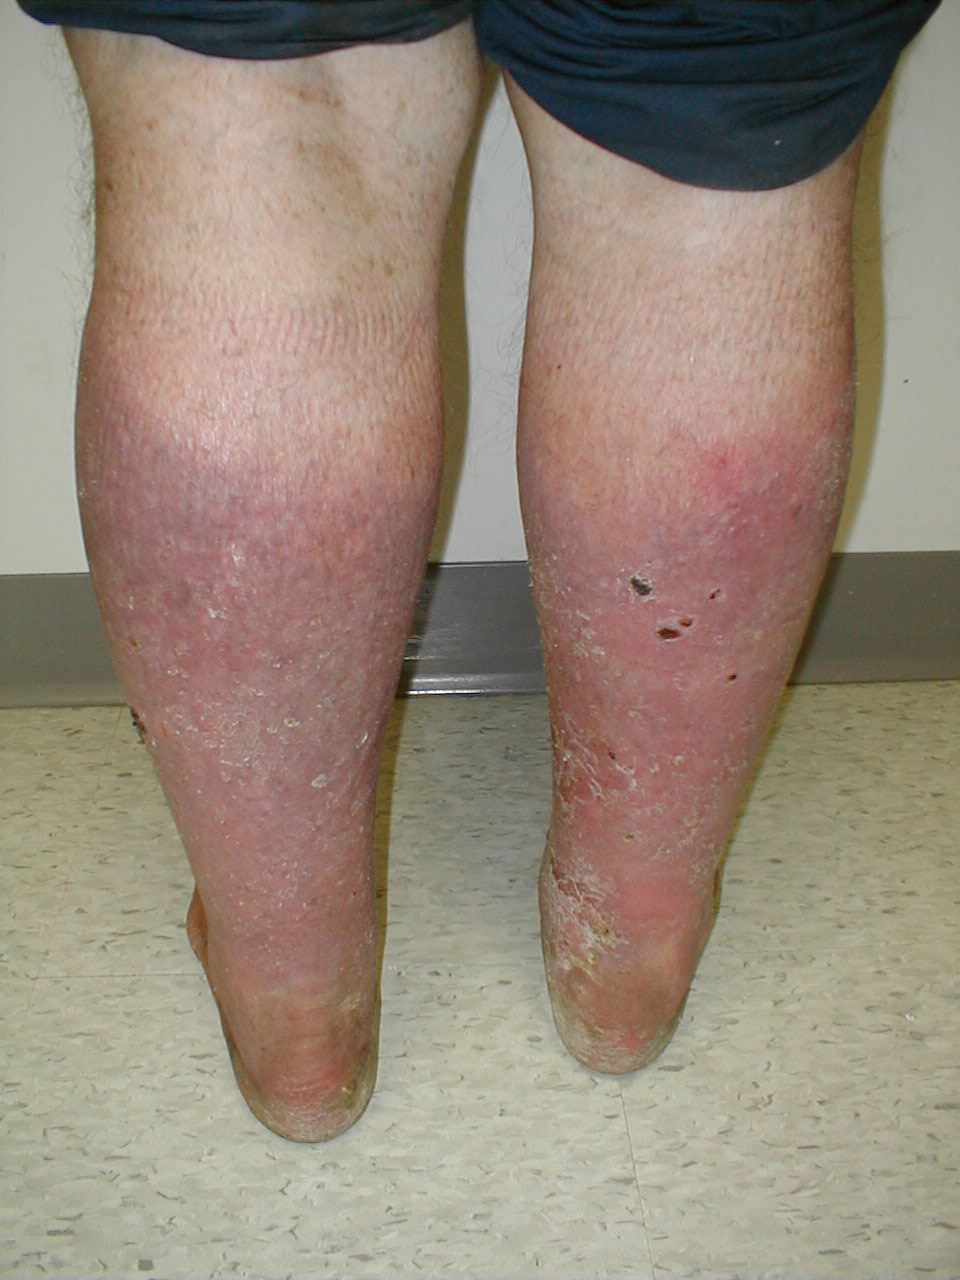 Chronic Venous Insufficiency - Pictures, Treatment and ...